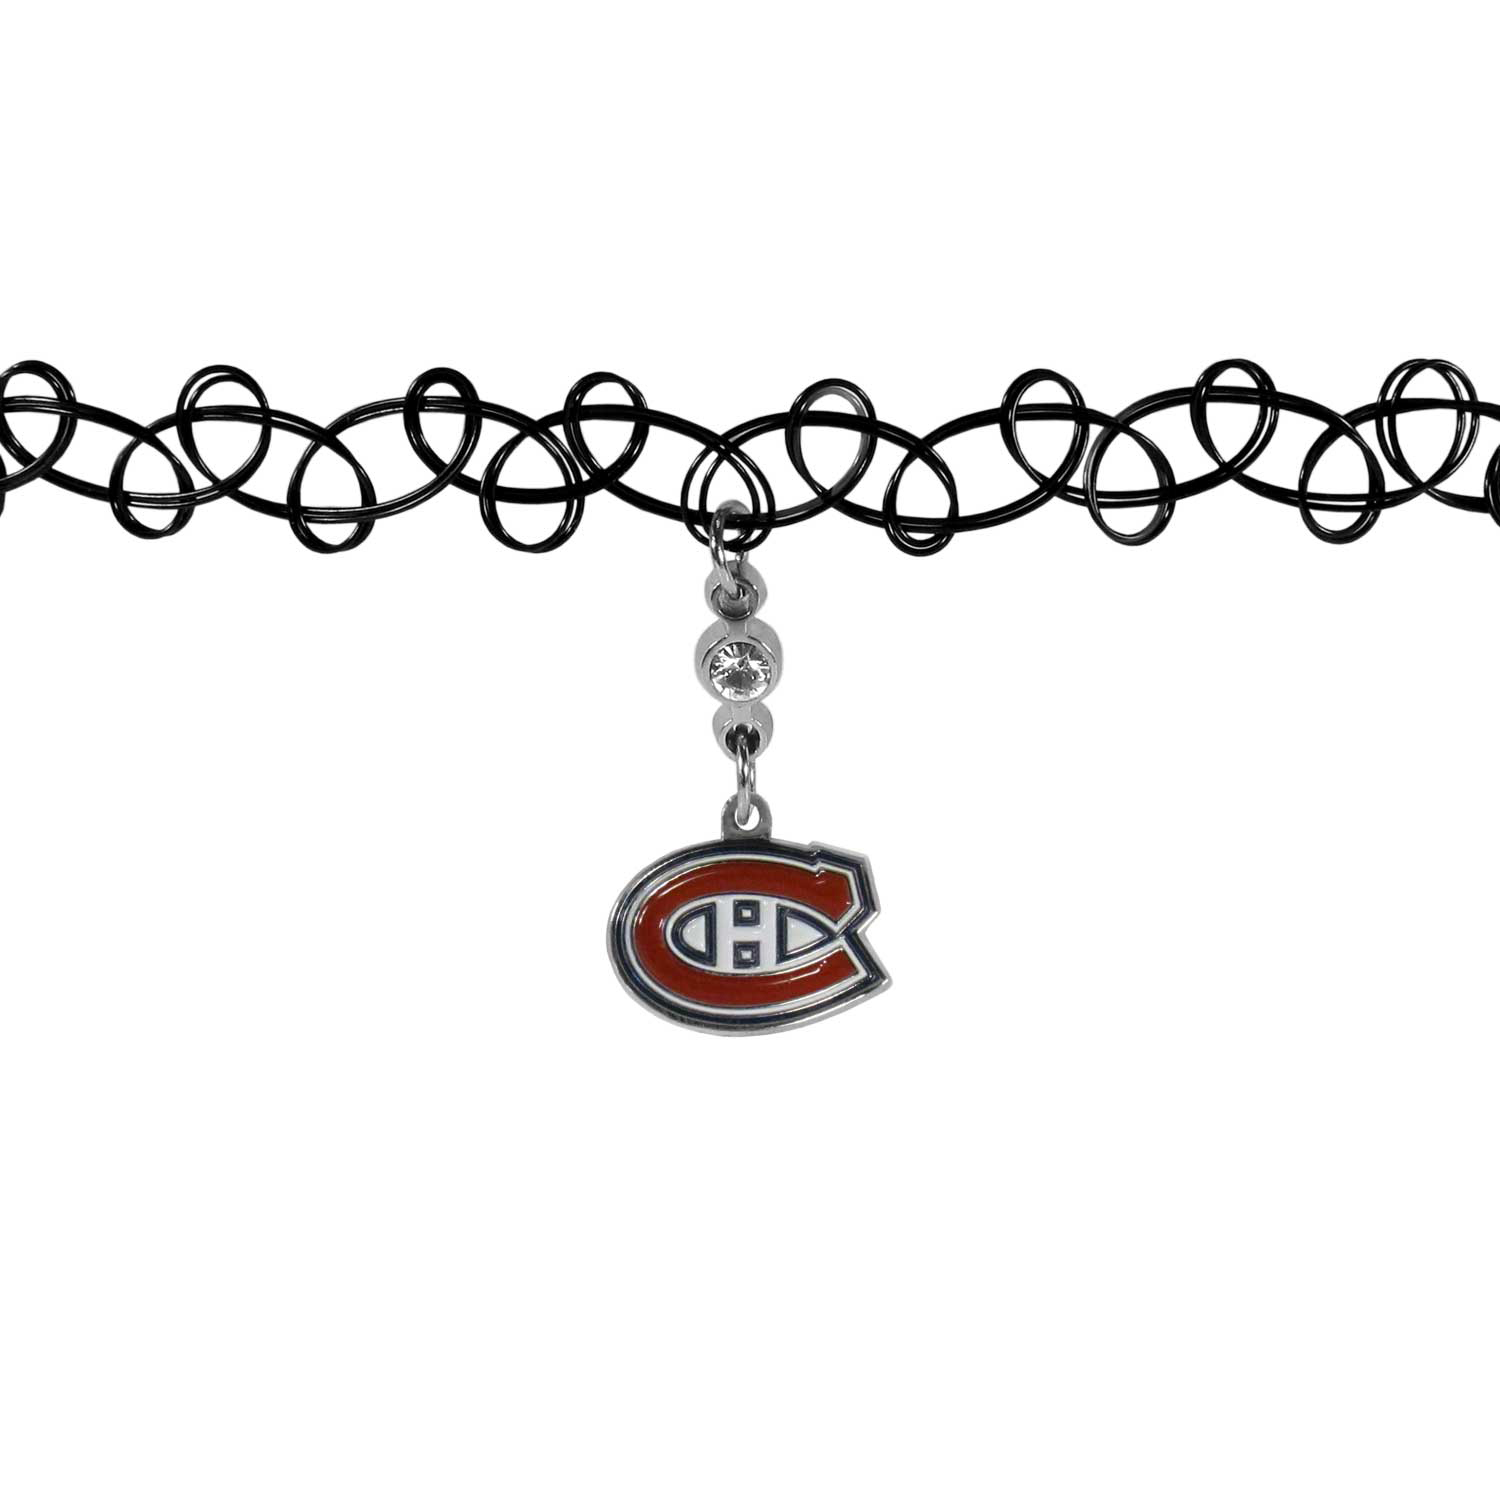 Montreal Canadiens® Knotted Choker - This retro, knotted choker is a cool and unique piece of fan jewelry. The tattoo style choker features a high polish Montreal Canadiens® charm with rhinestone accents.